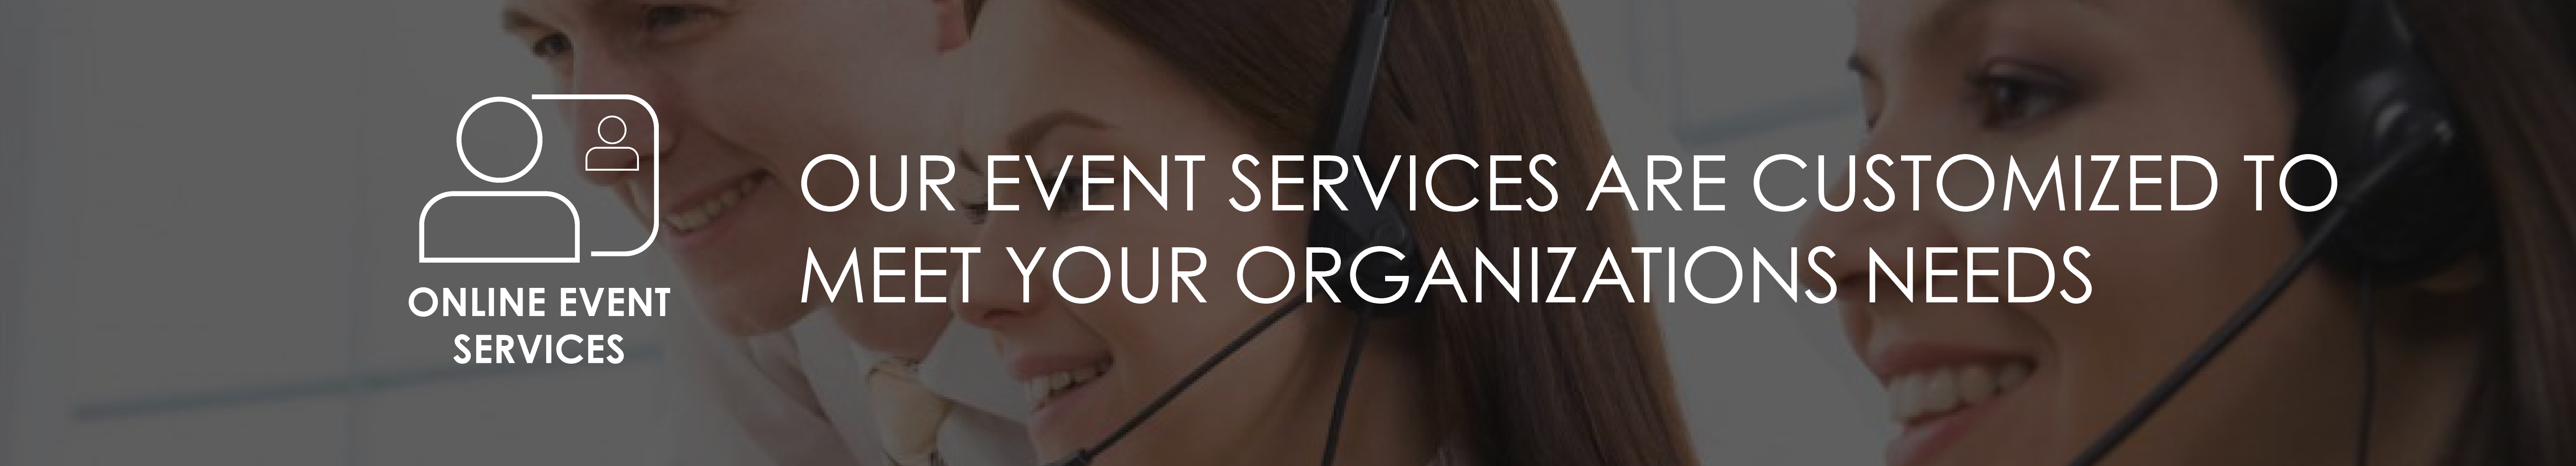 Events | Our event services are customized to meet your organizations needs